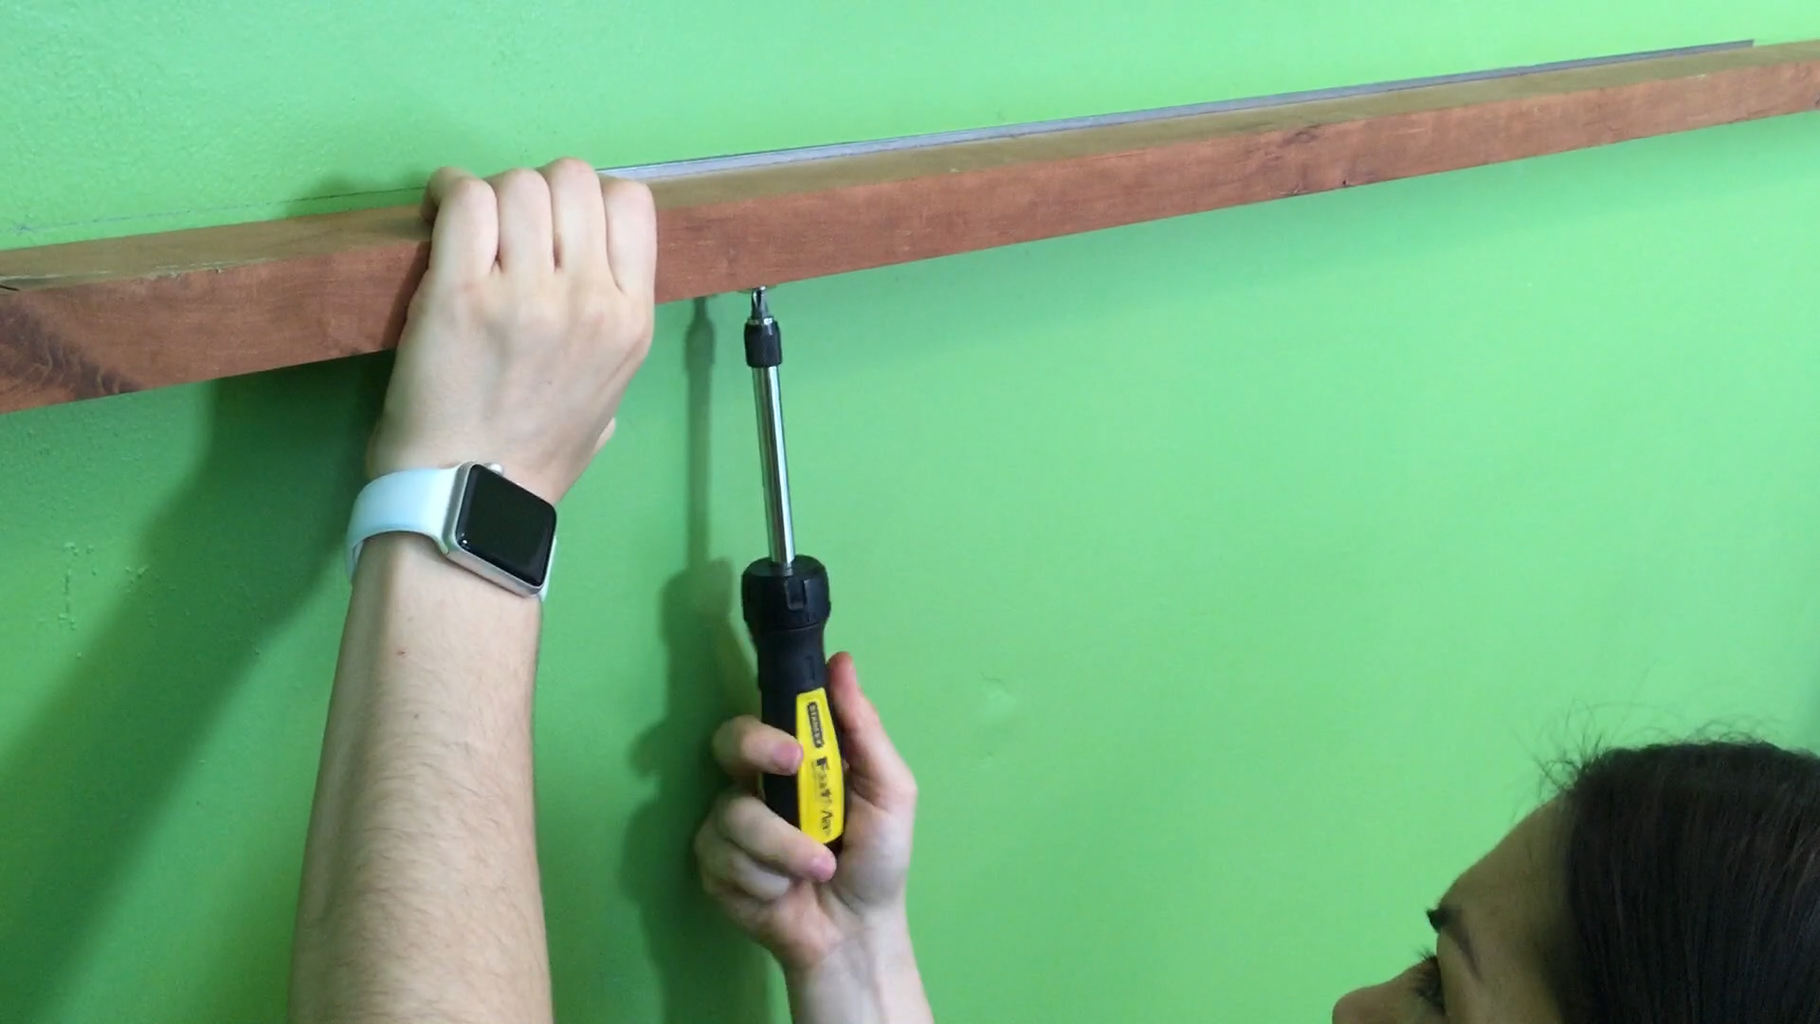 Screw Angle Iron to Wall and Underside of Wood